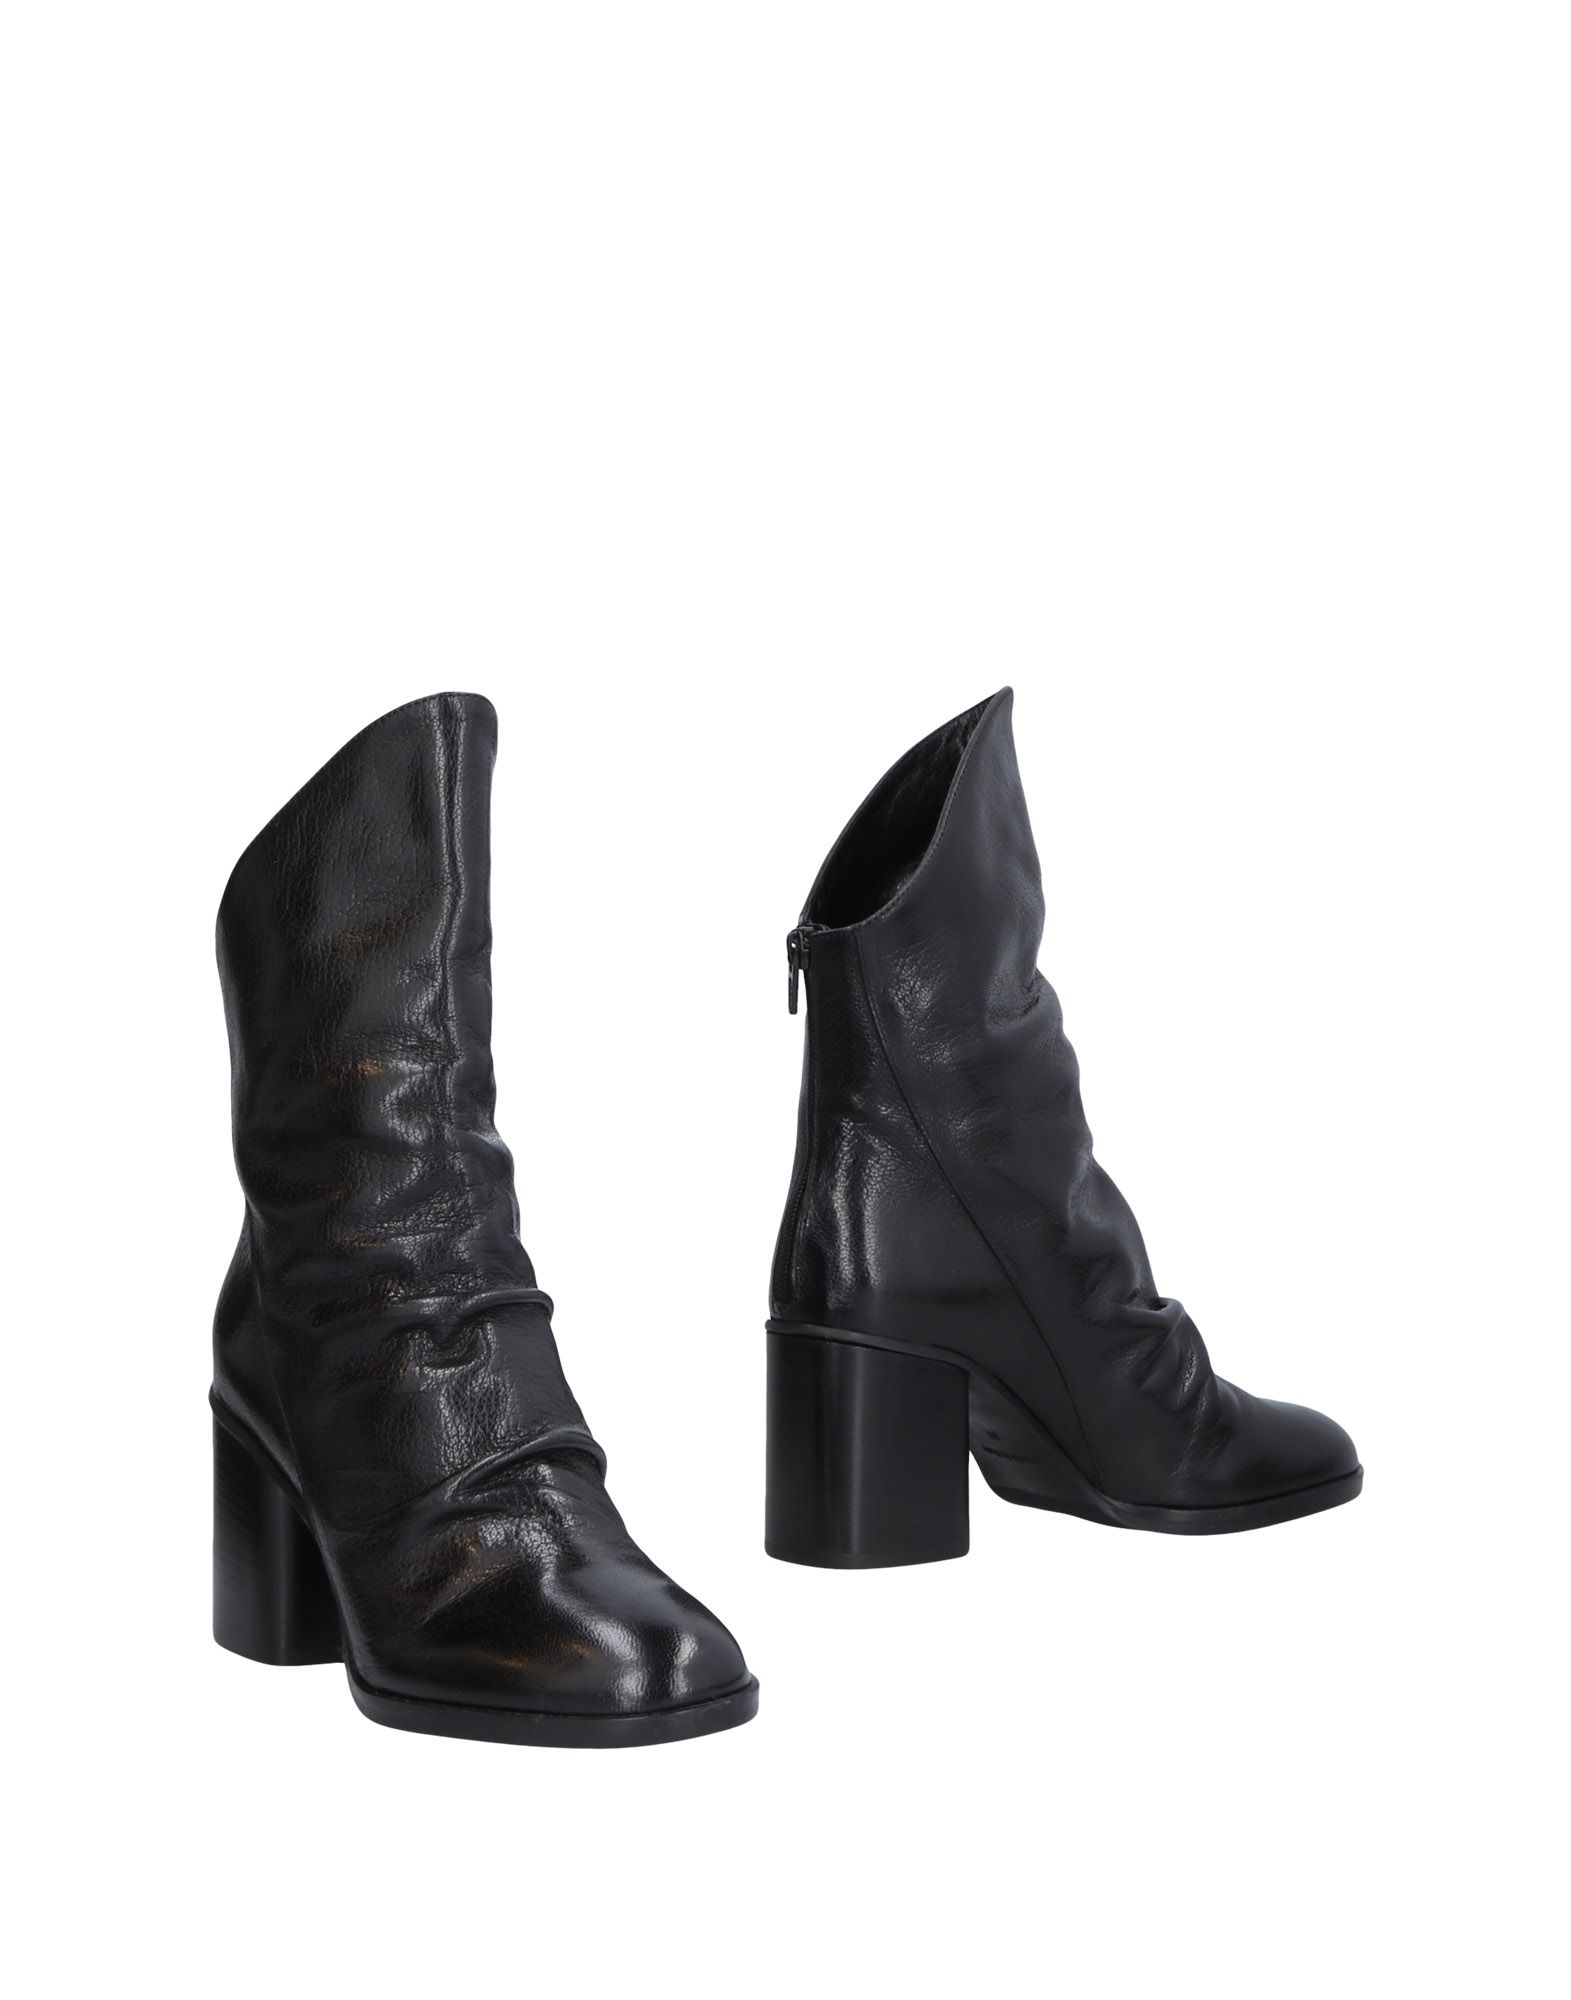 c1768137ac6 Alexandra Ankle Boot - Women Alexandra Ankle Boots online on YOOX ...